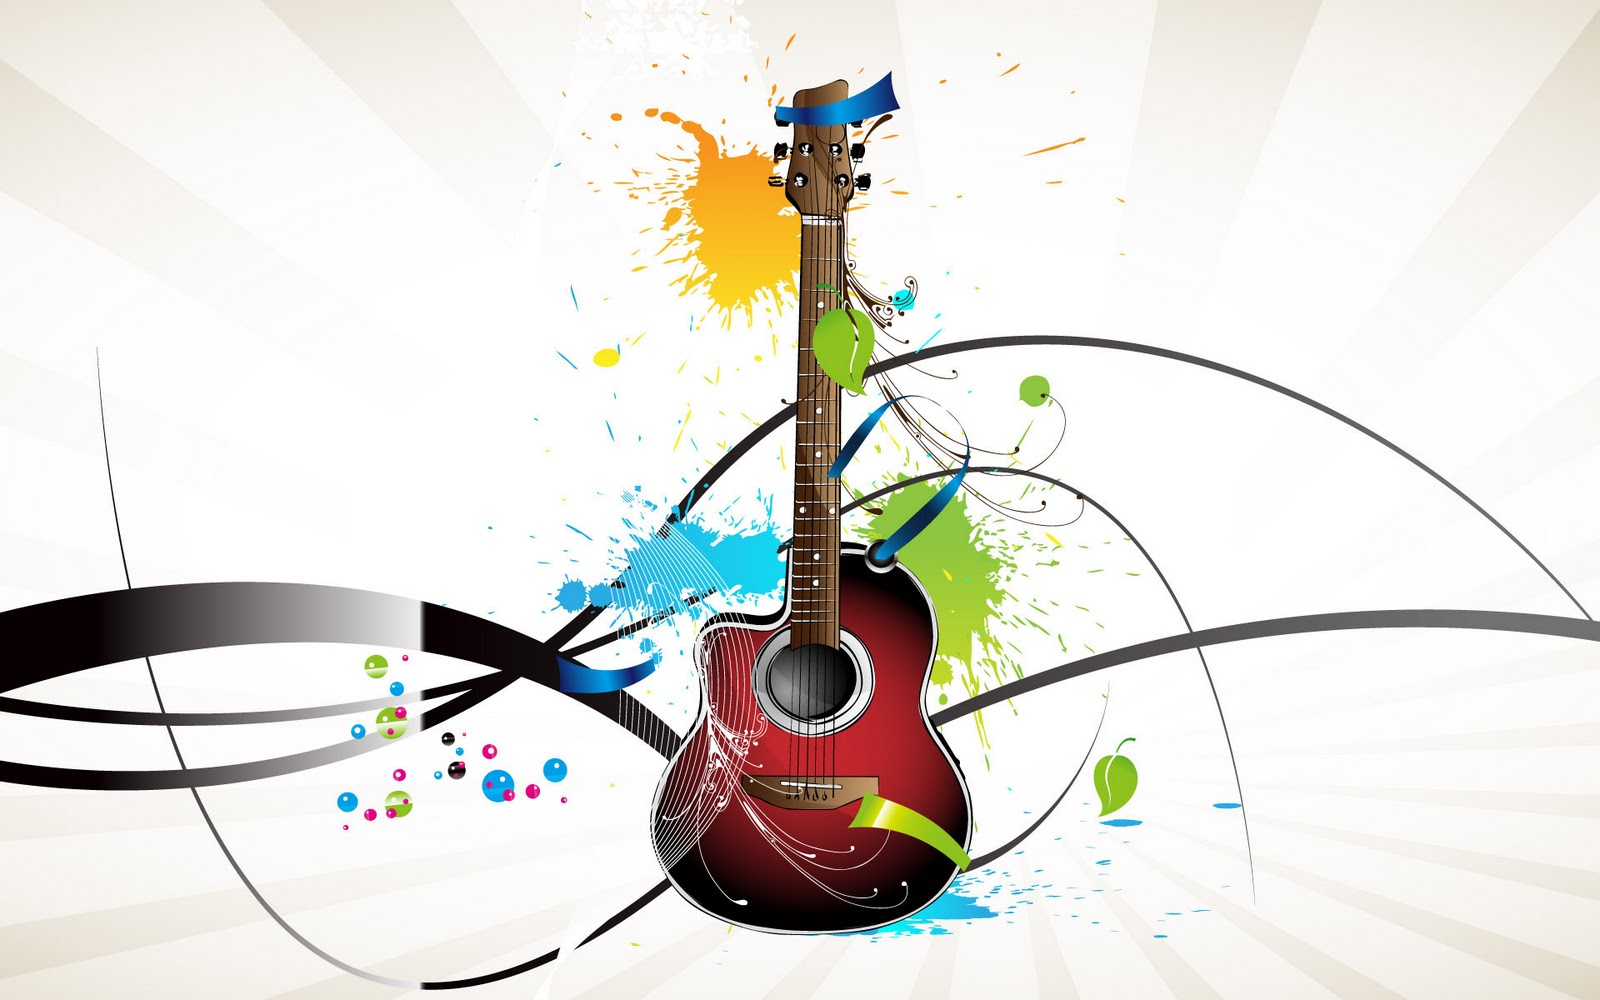 http://1.bp.blogspot.com/-4_YJ19Zyulo/T_y0GUscEHI/AAAAAAAAFek/FA9bdFWRMXc/s1600/Best-Abstract-guitars-wallpapers-HD-Abstract-Music-Wallpapers.jpg